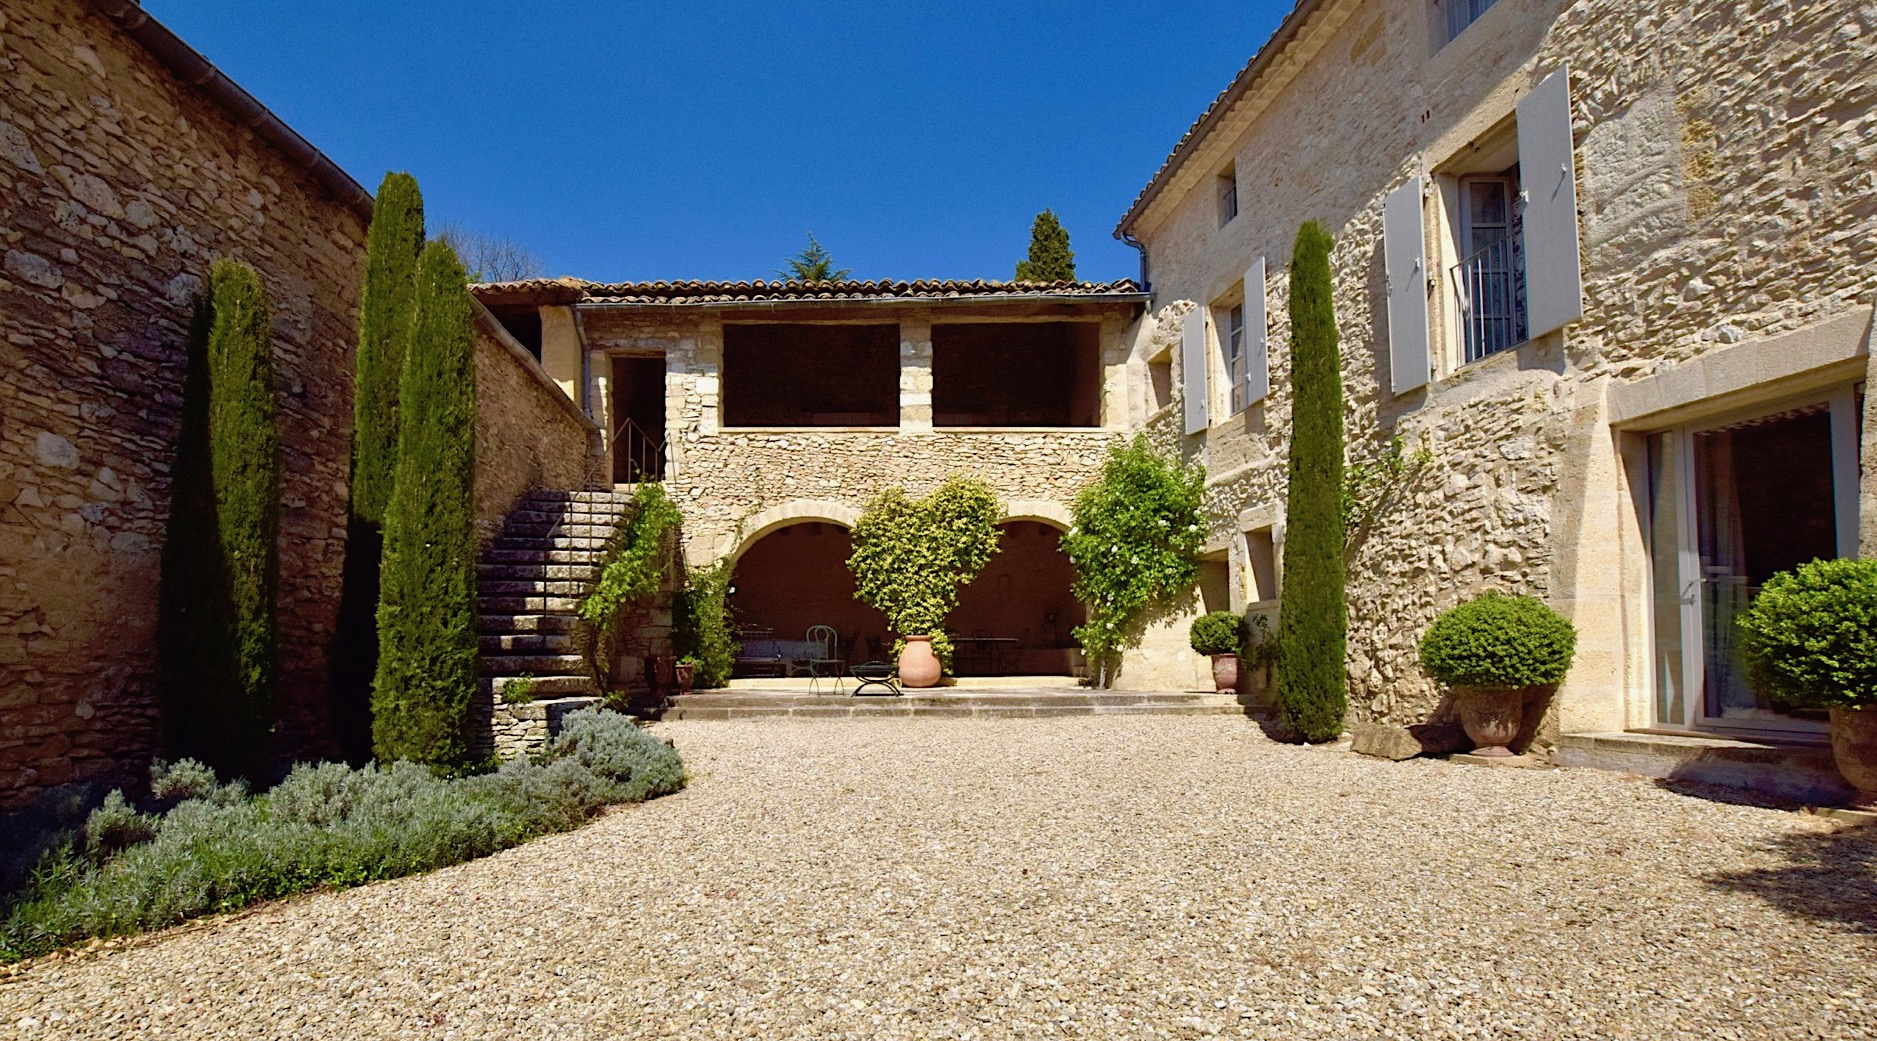 2212 : Uzès, splendid property in sought after village close to Uzès , 520 m2 on 1430m2 of garden with pool.